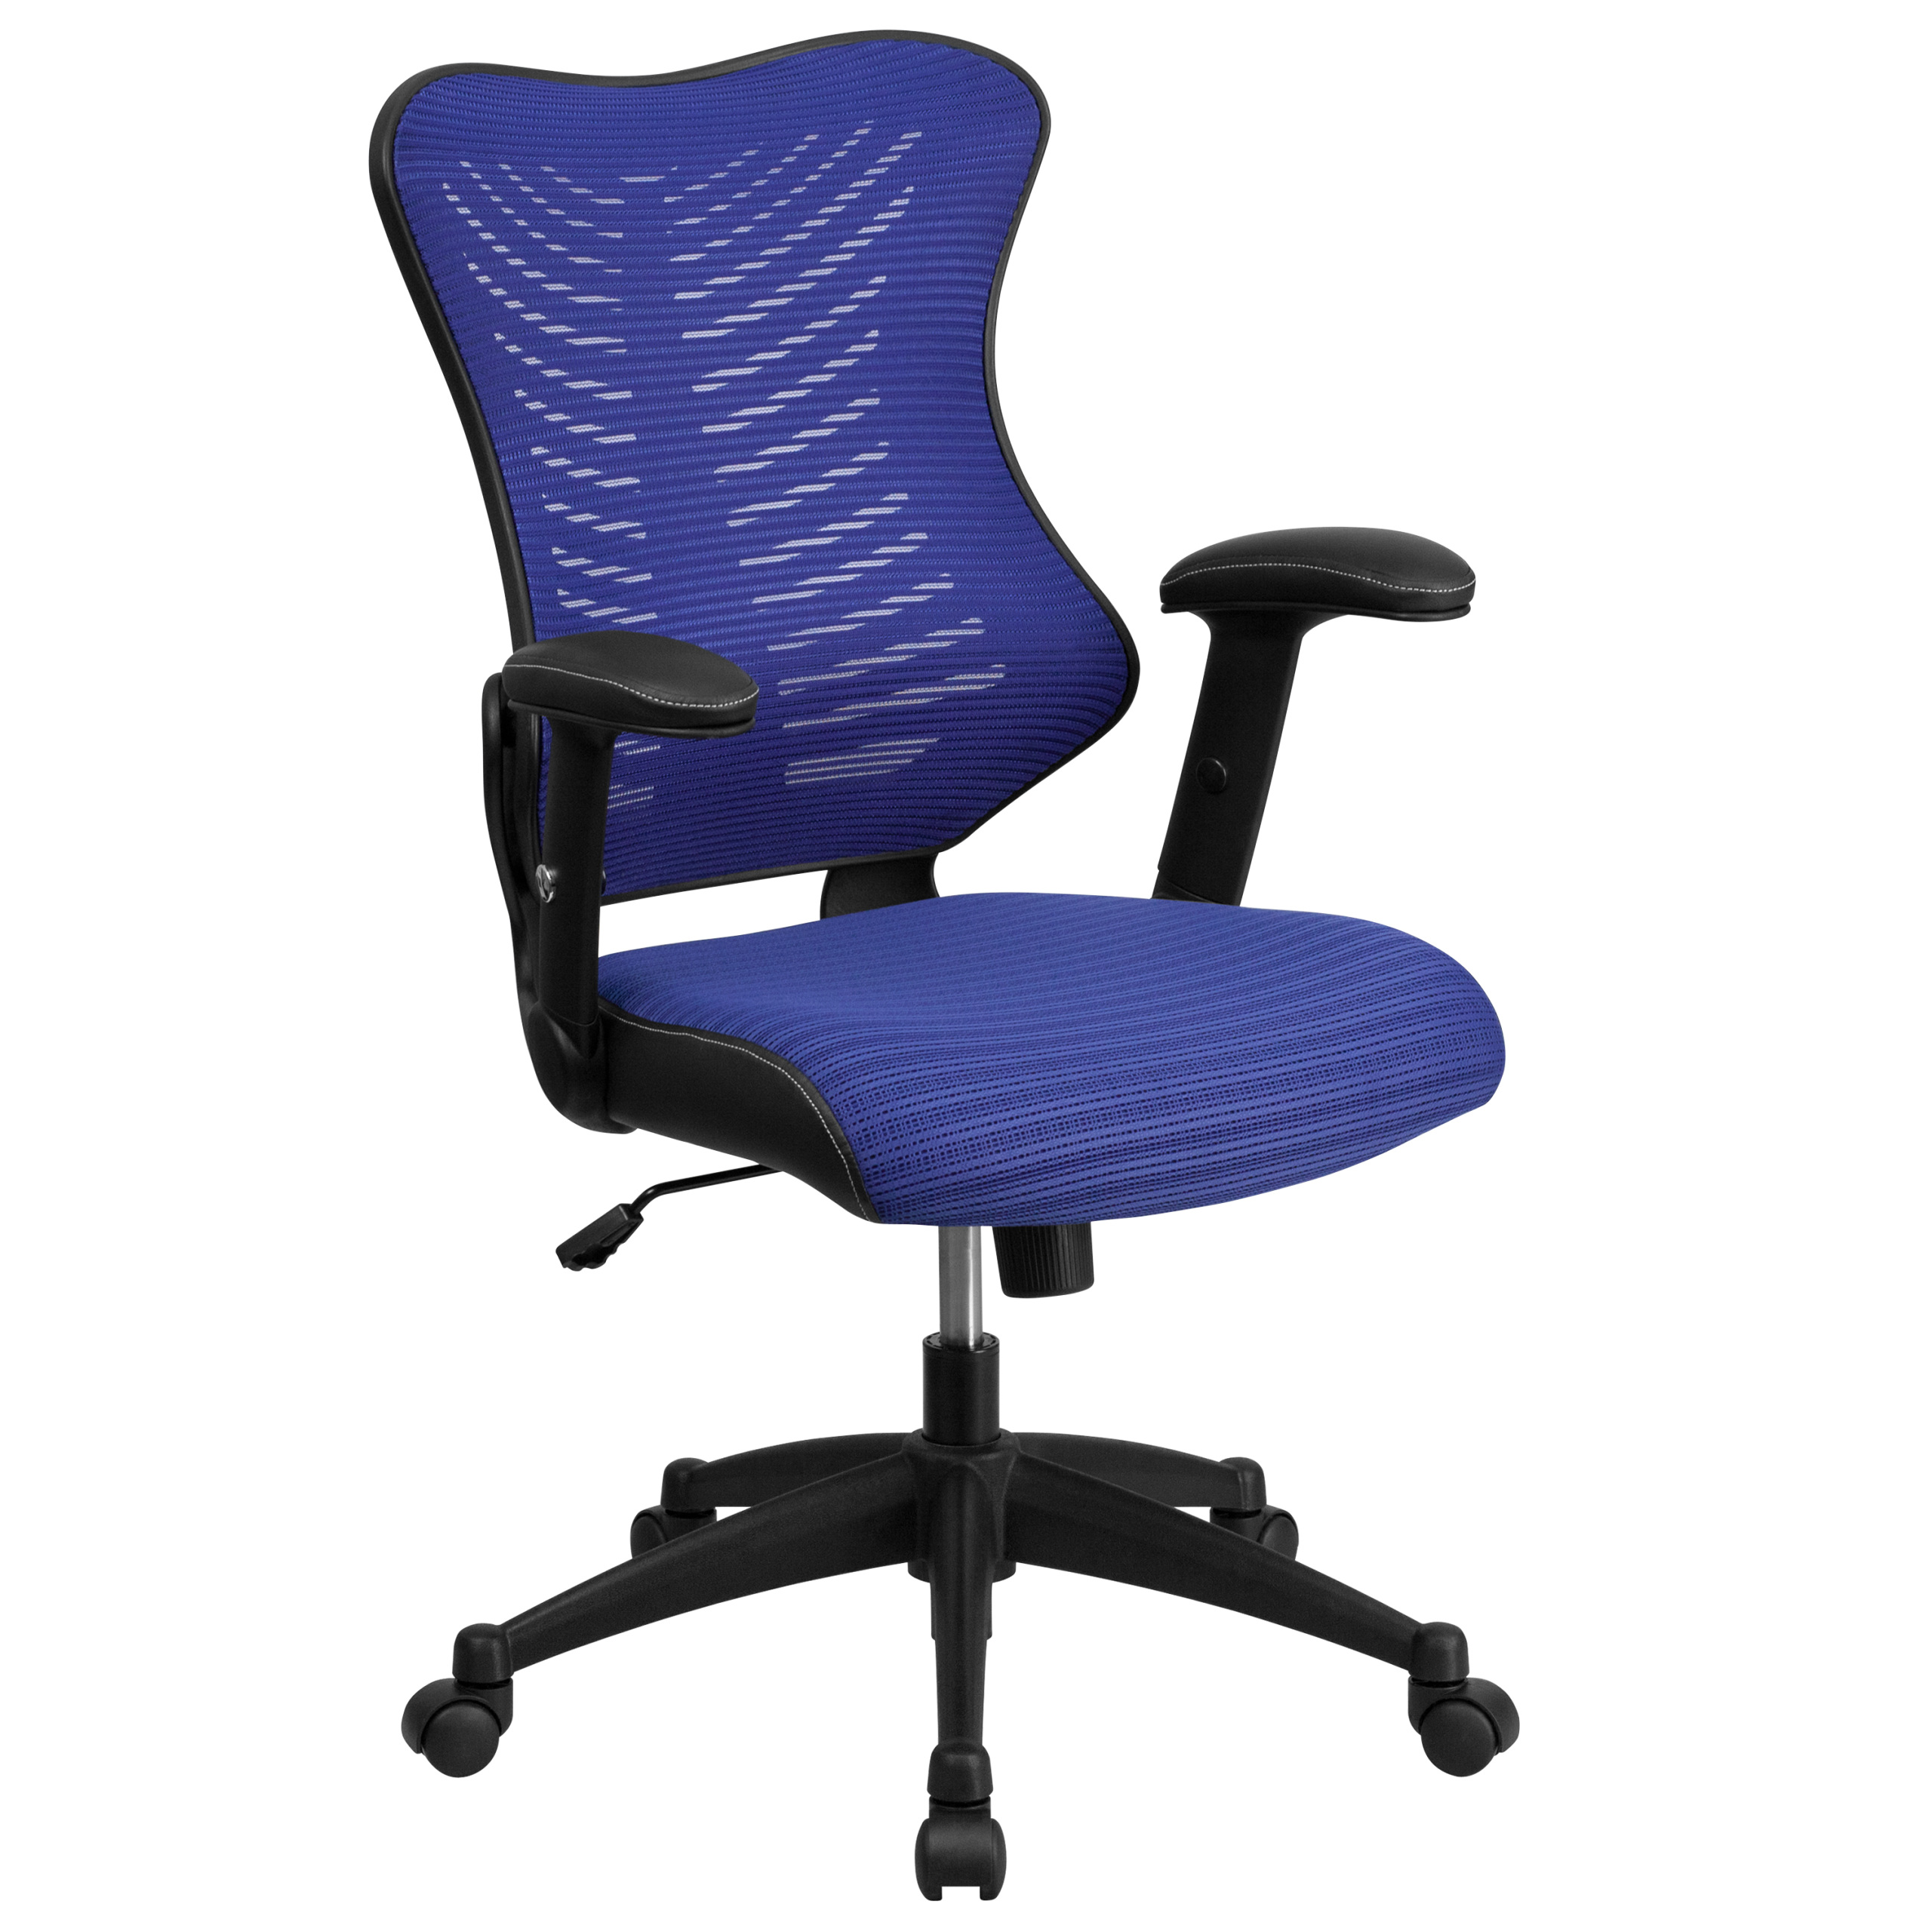 Ventilated Mesh Back fice Chair